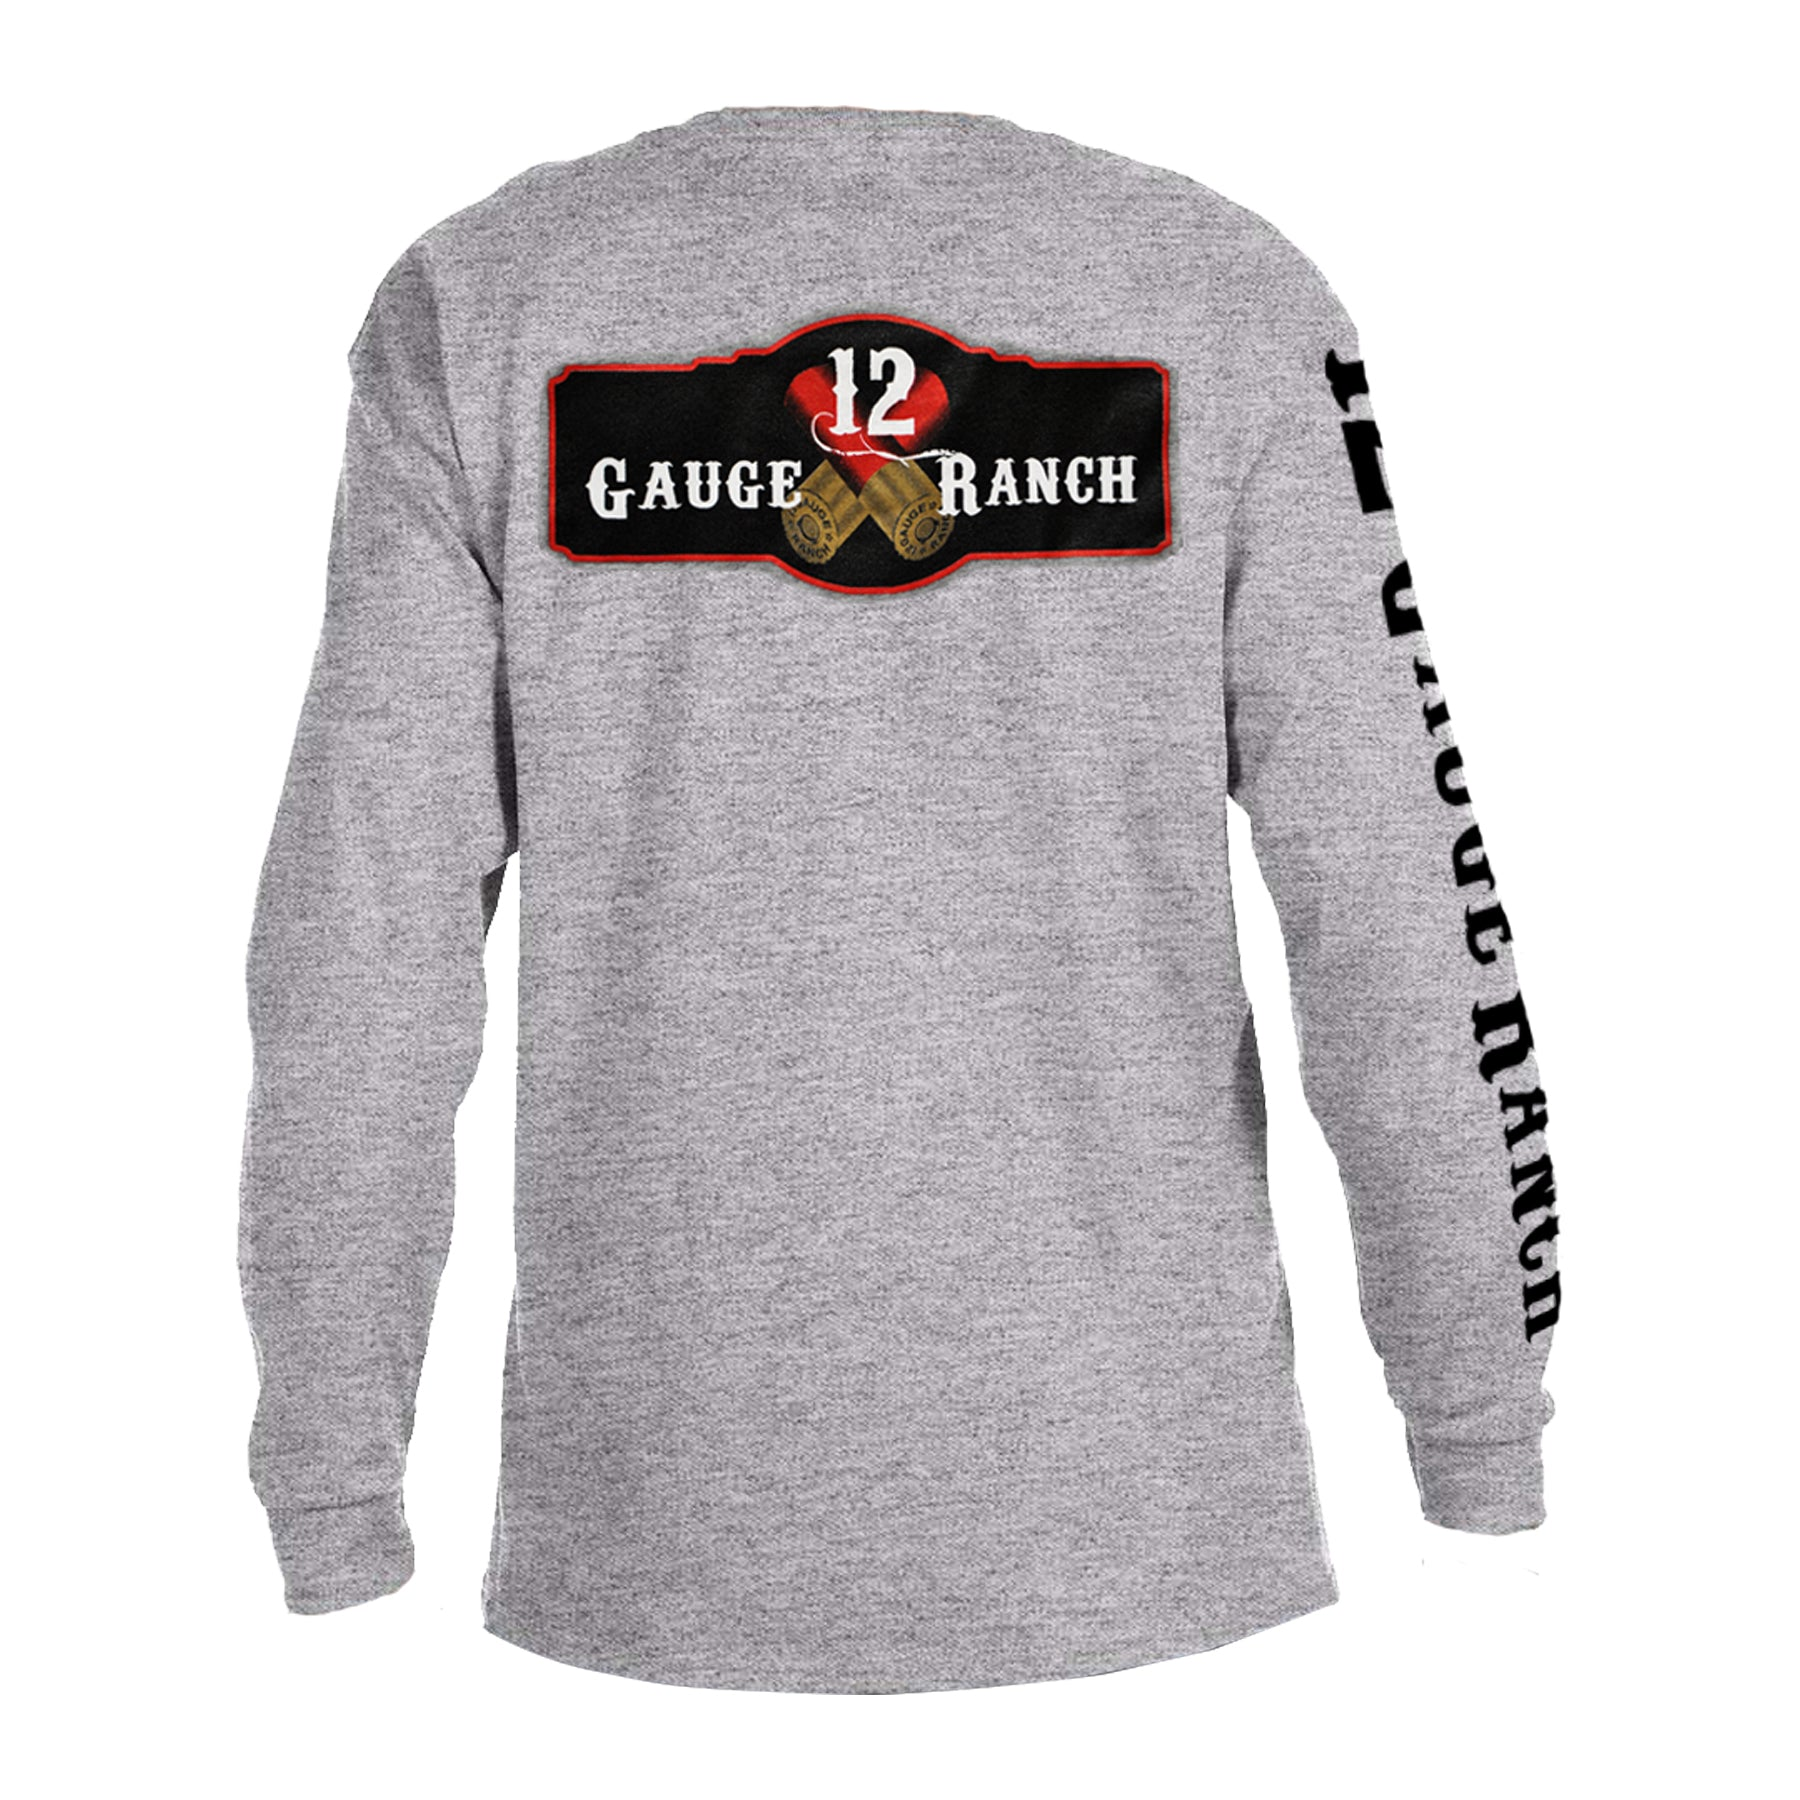 12 Gauge Ranch Men's Gray Long Sleeve Shirt (LSGRY101), Apparel, 12 Gauge Ranch, 12 Gauge Ranch 12 Gauge Ranch